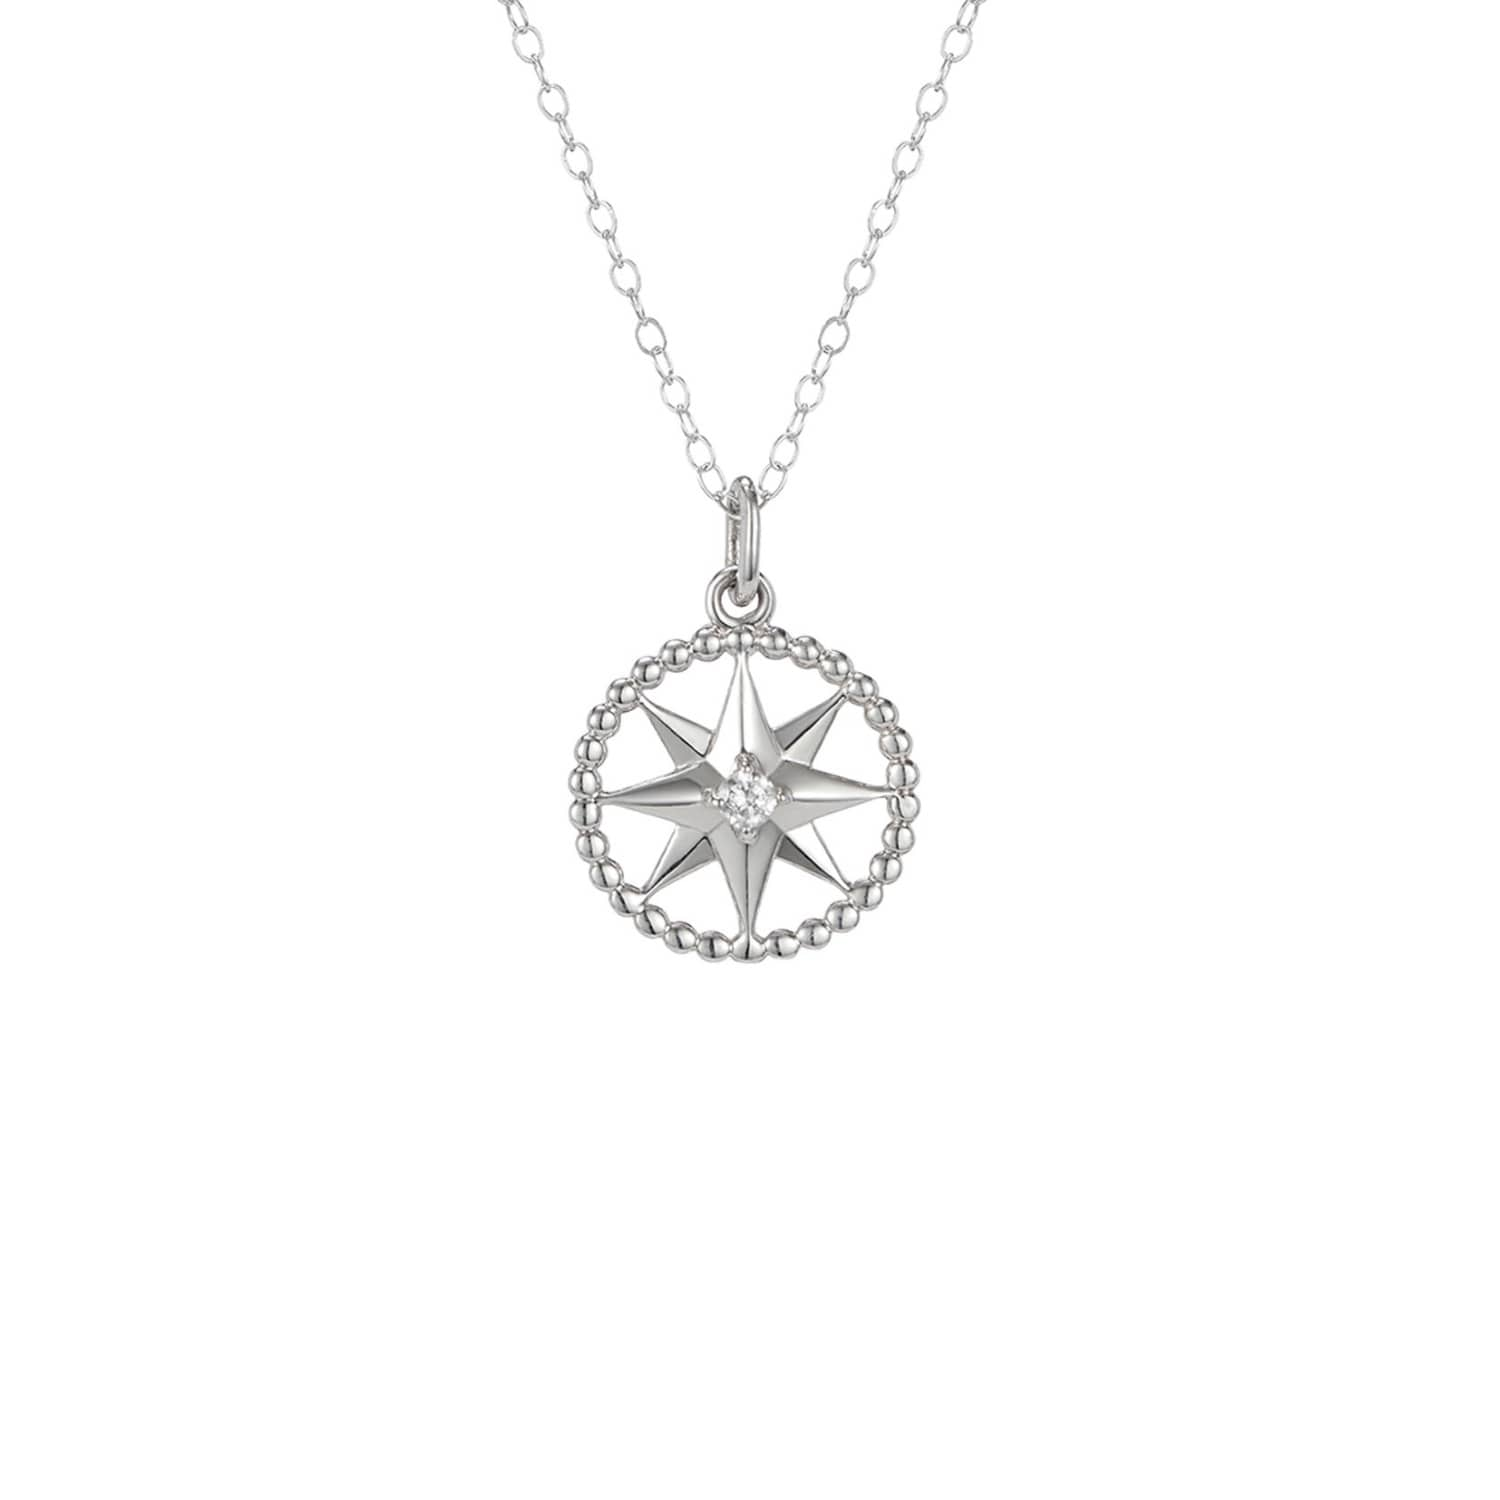 7357c9064b7ce Crystal Star Charm Pendant In Sterling Silver On 14 Inch Choker ...